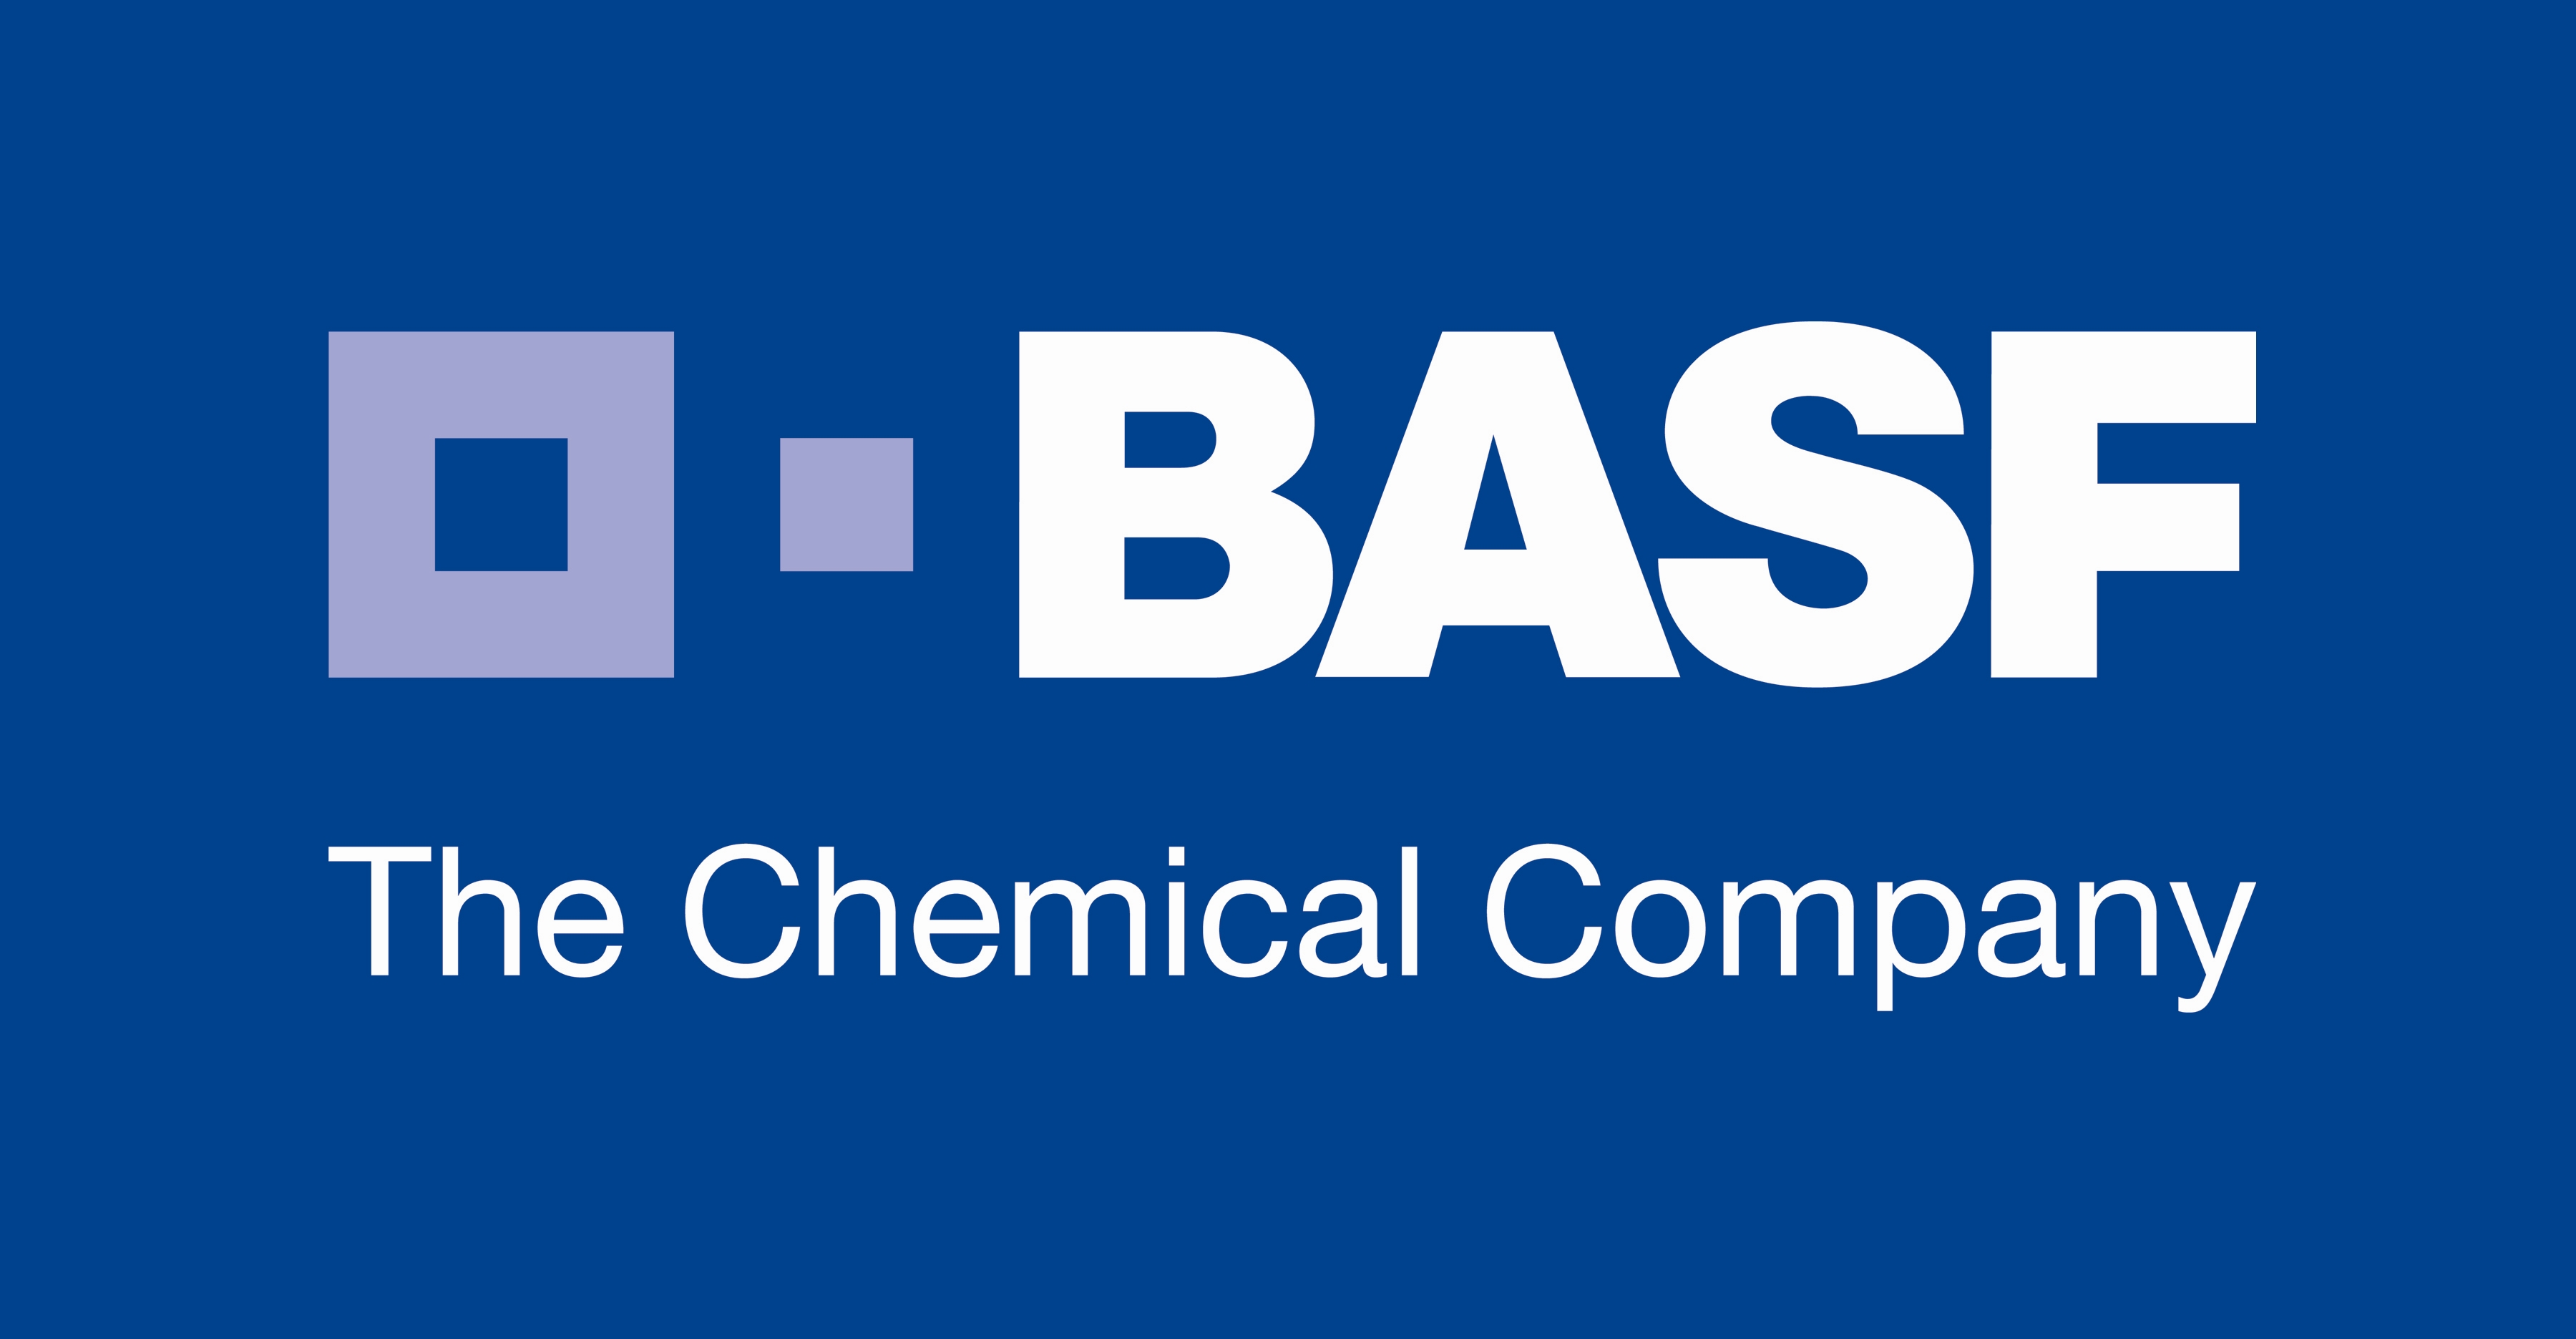 BASF-logo_9in_db-2